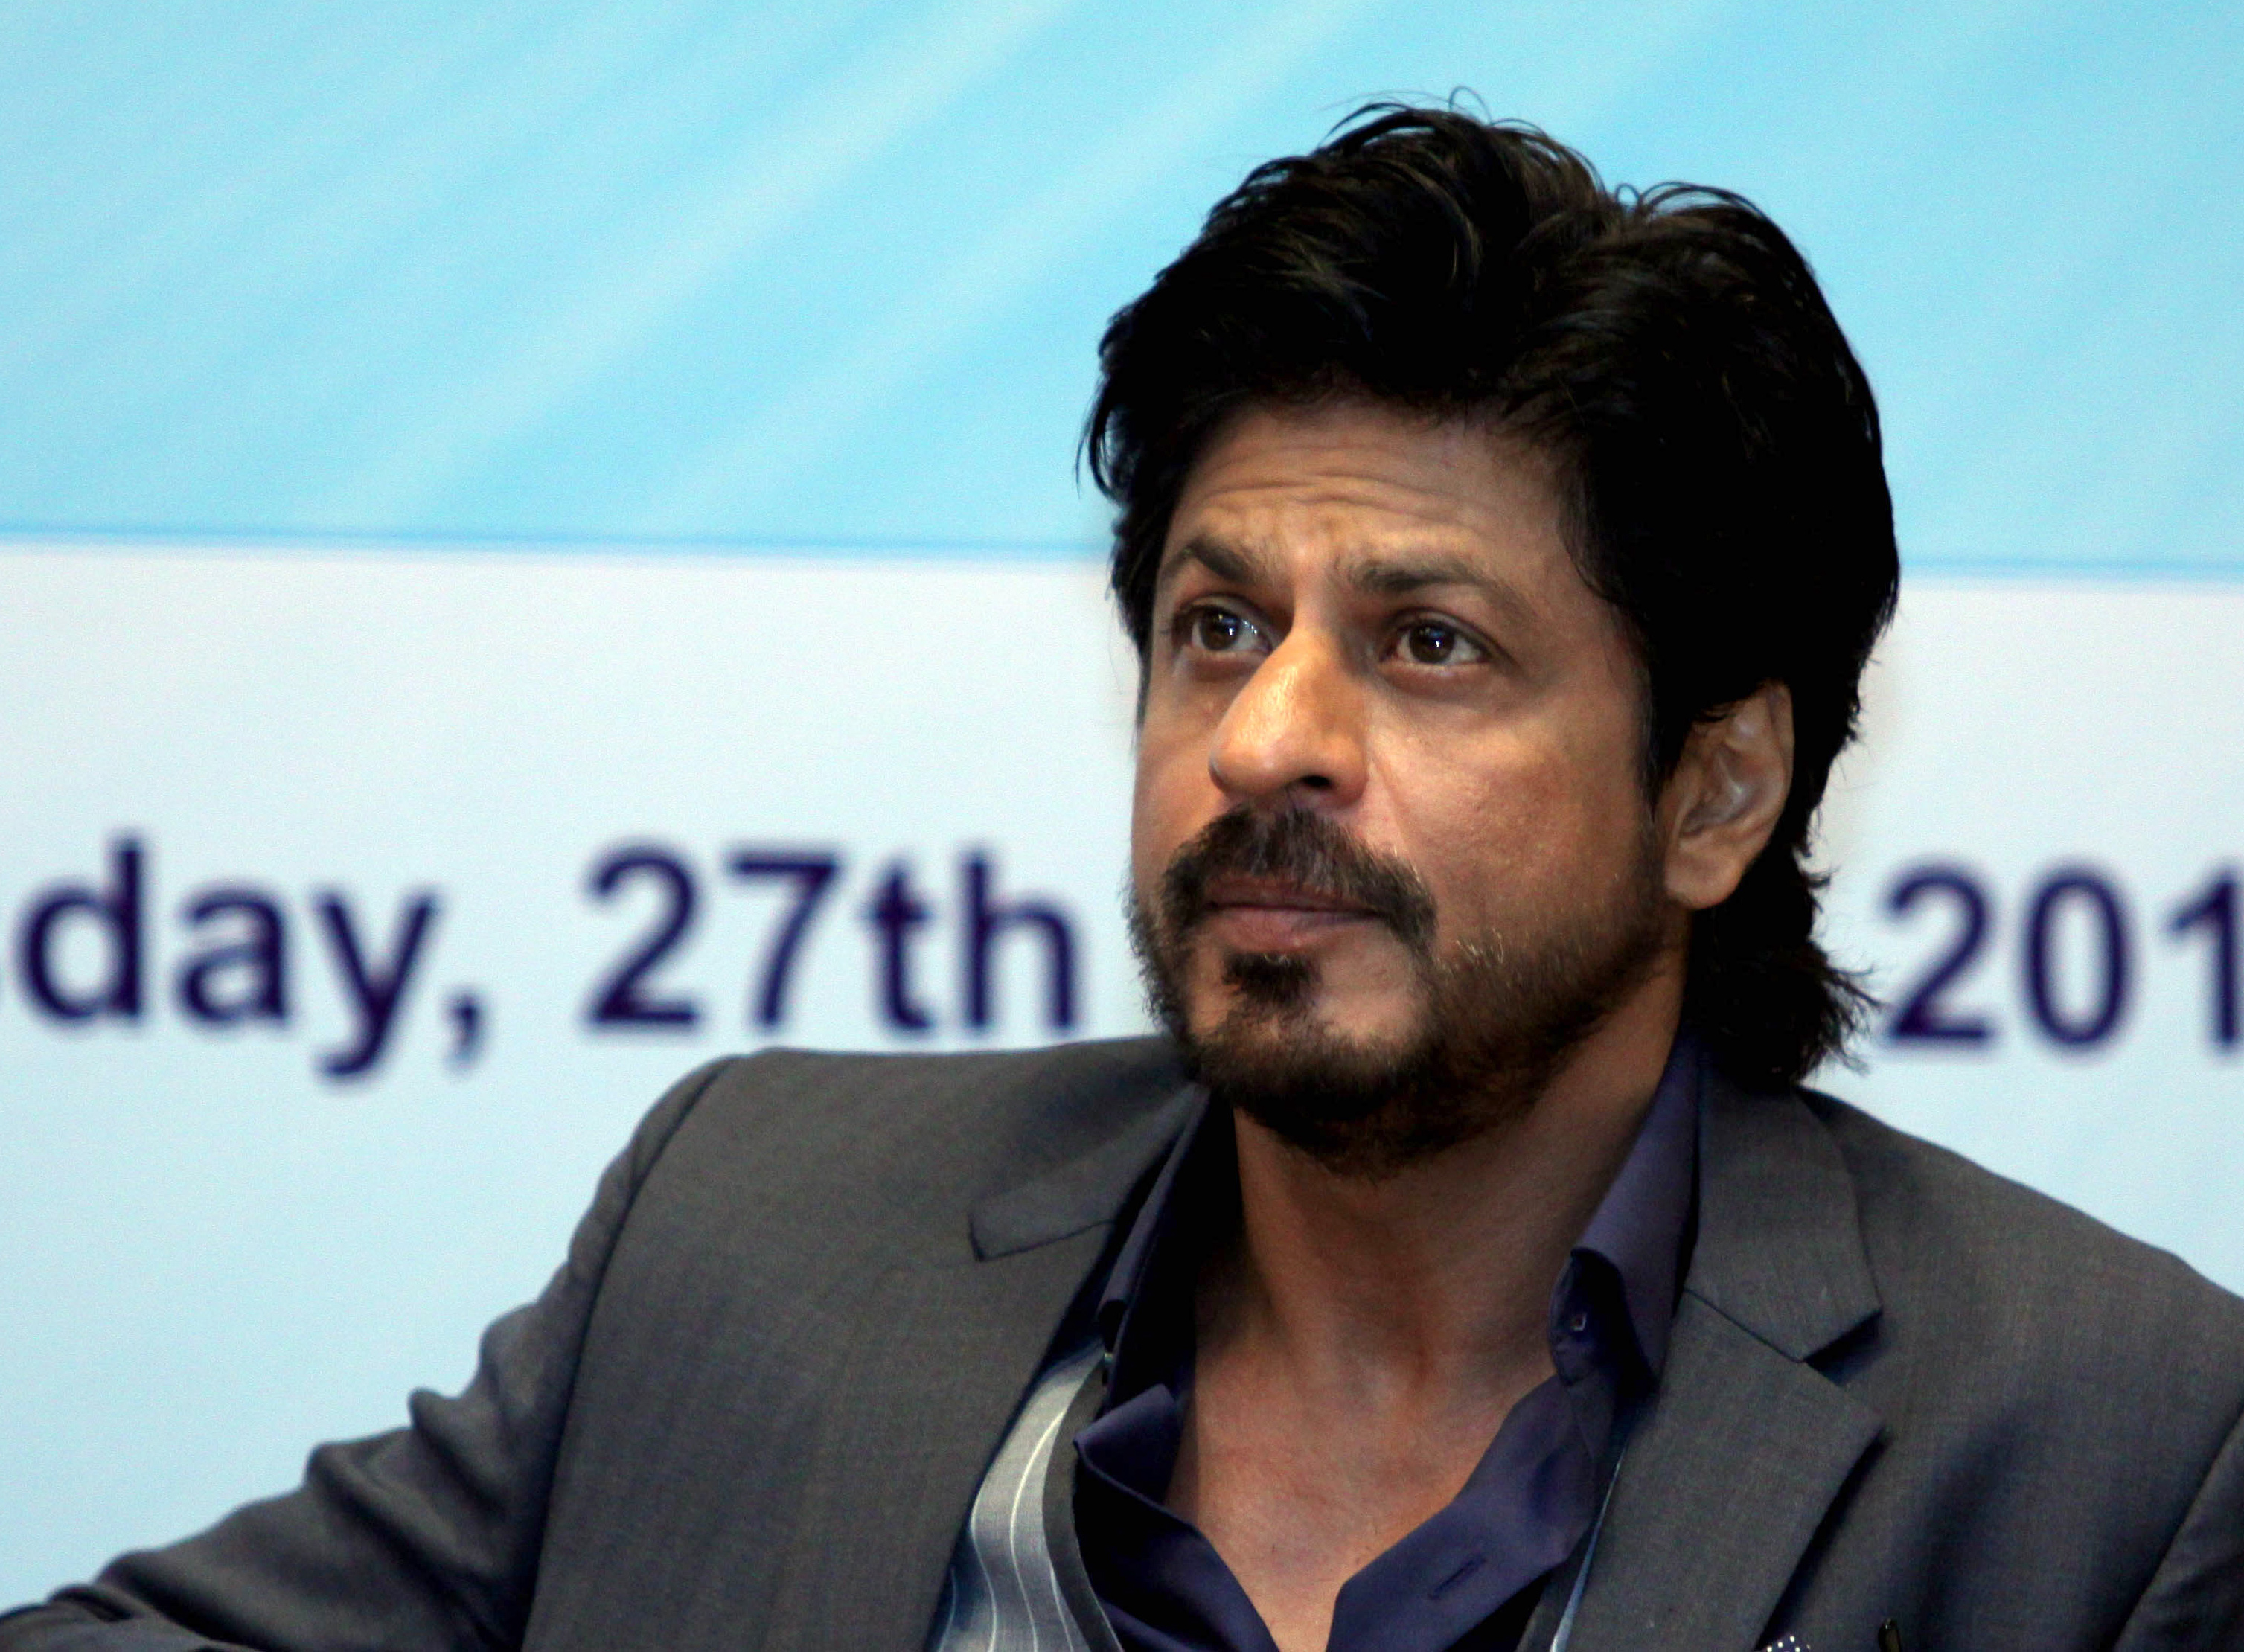 Bollywood actor Shah Rukh Khan poses during the launch of the book Movers and Makers in the Indian city of Mumbai on April 27, 2016